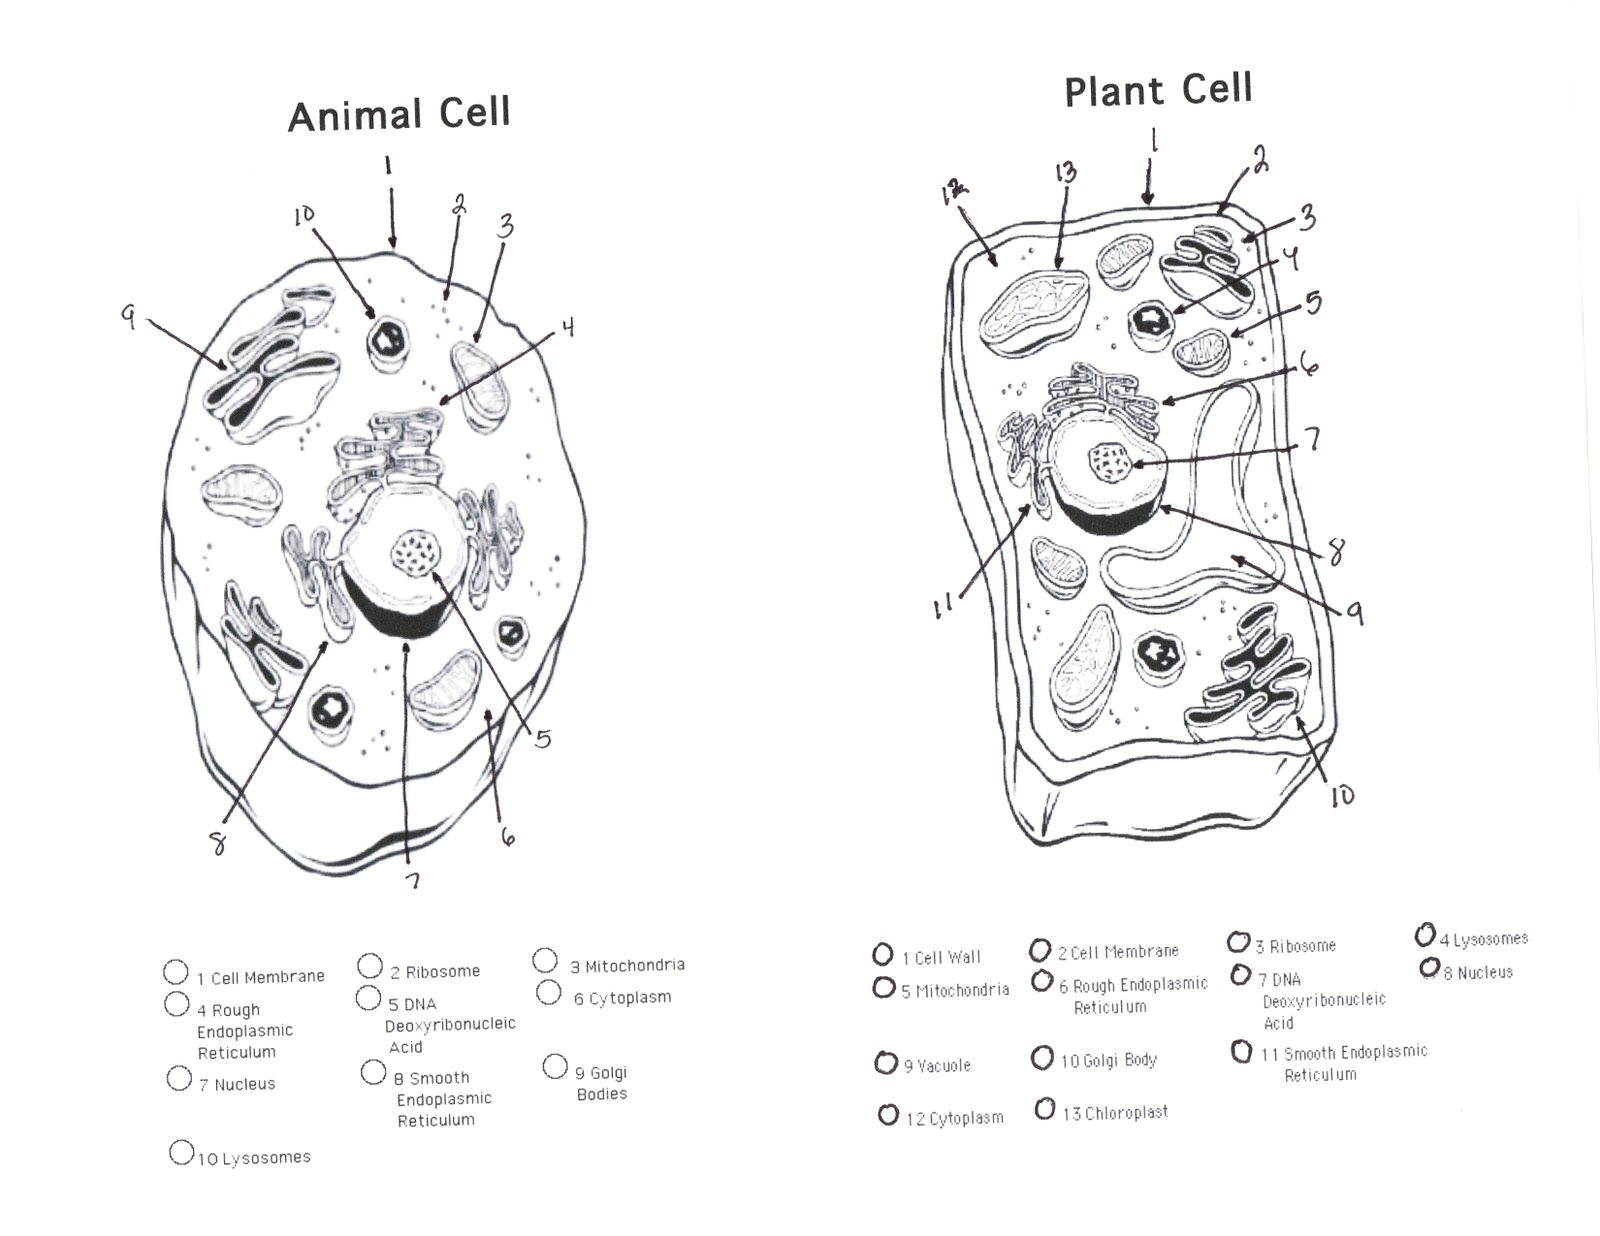 Animal Cell and Plant Cell Drawing Plant and Animal Cell Diagram Unlabeled Printable Diagram